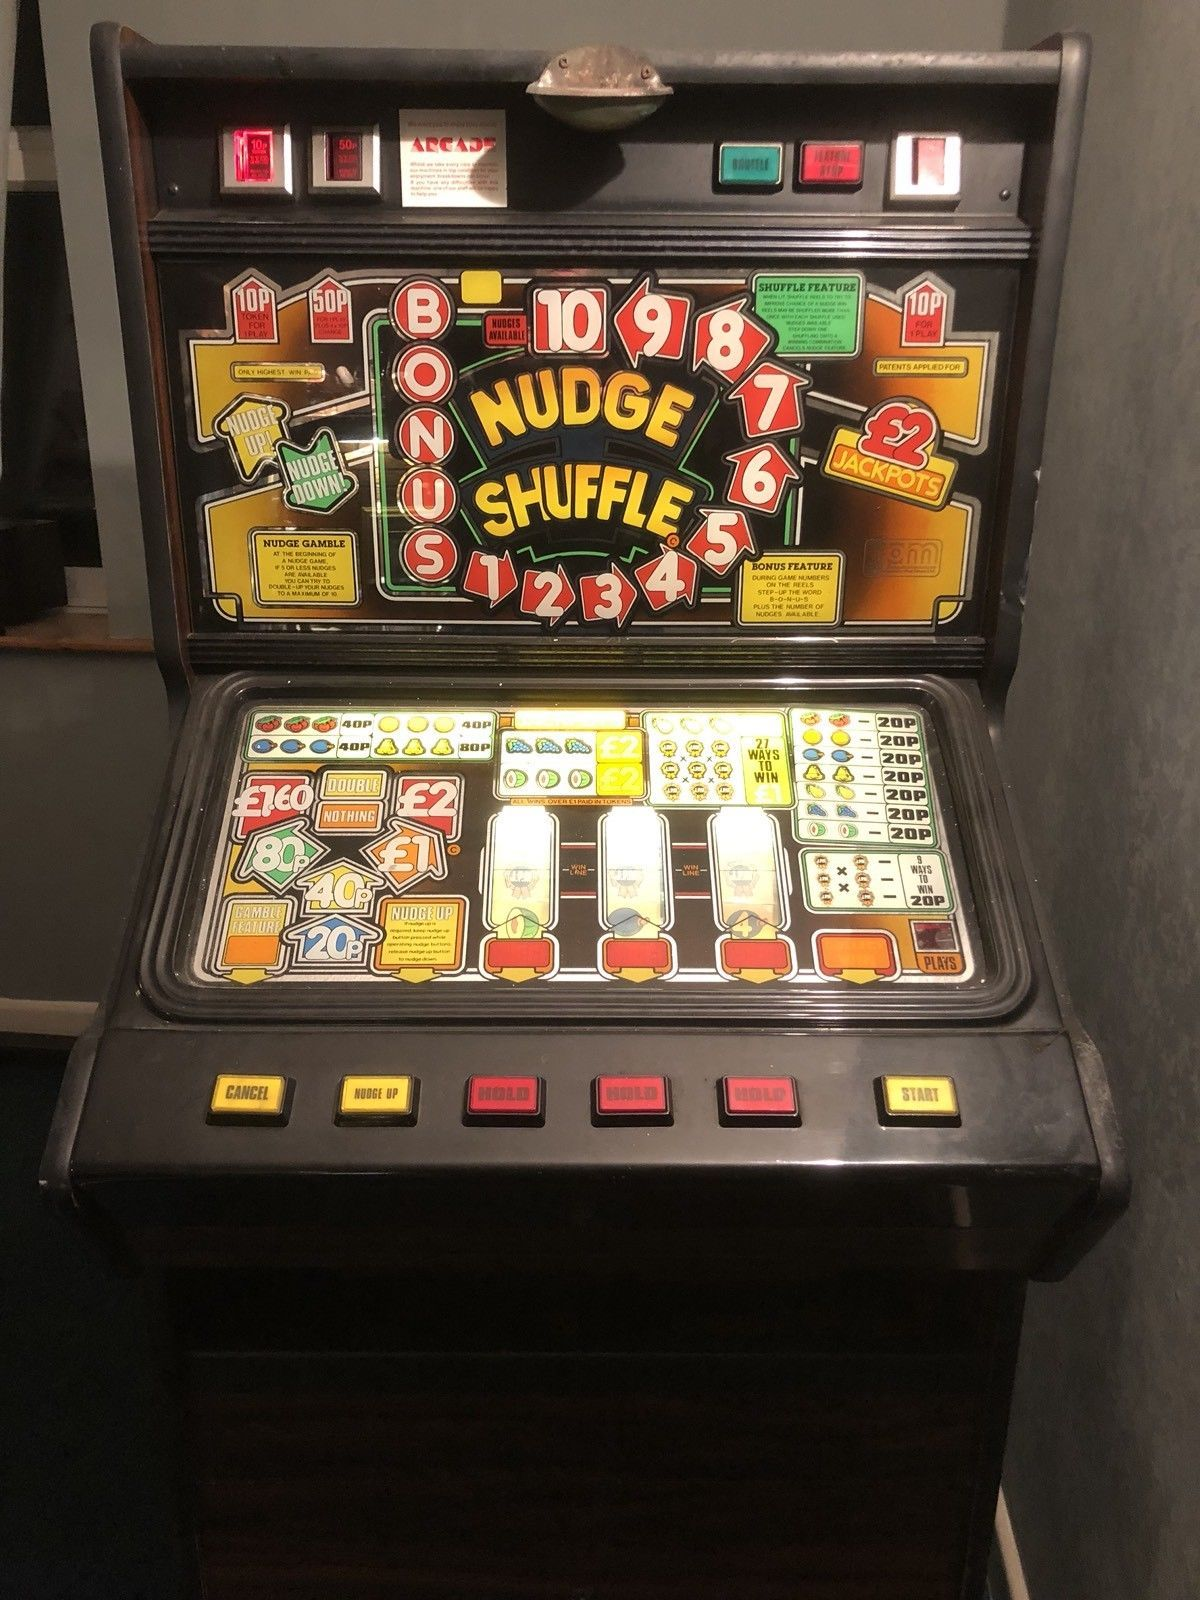 Tuppenny nudger fruit machine for sale near me